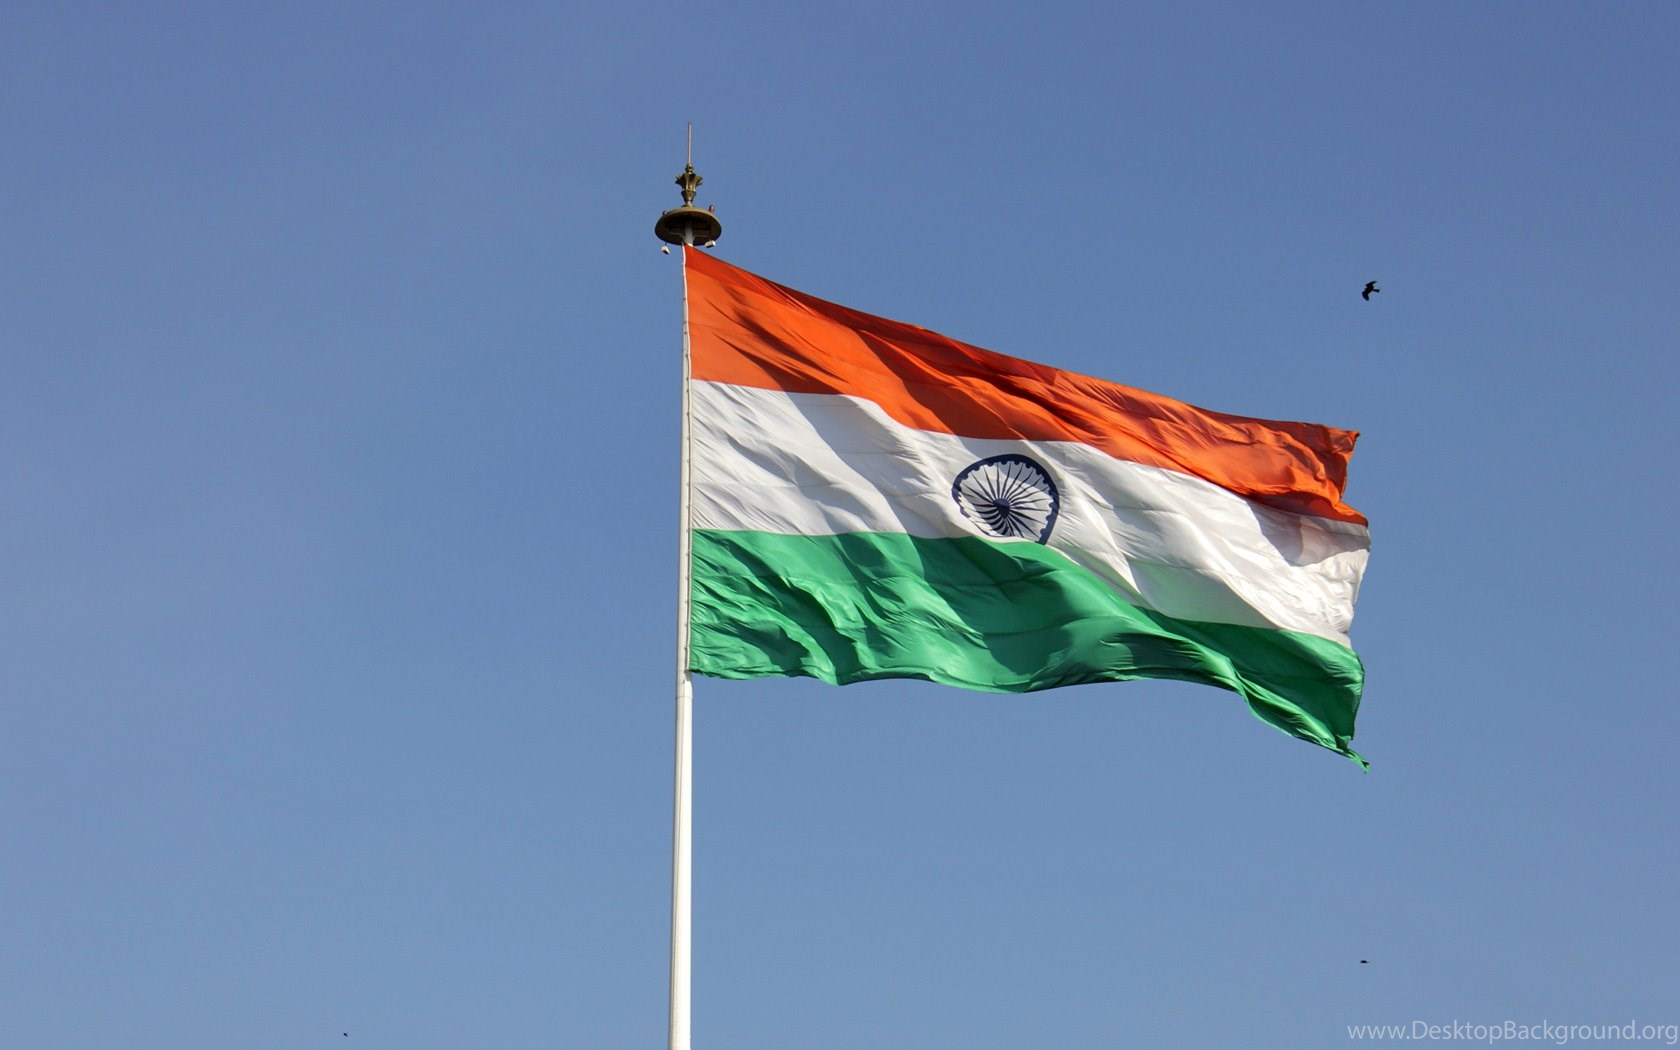 the indian flag pics hd for fb profile picture desktop background